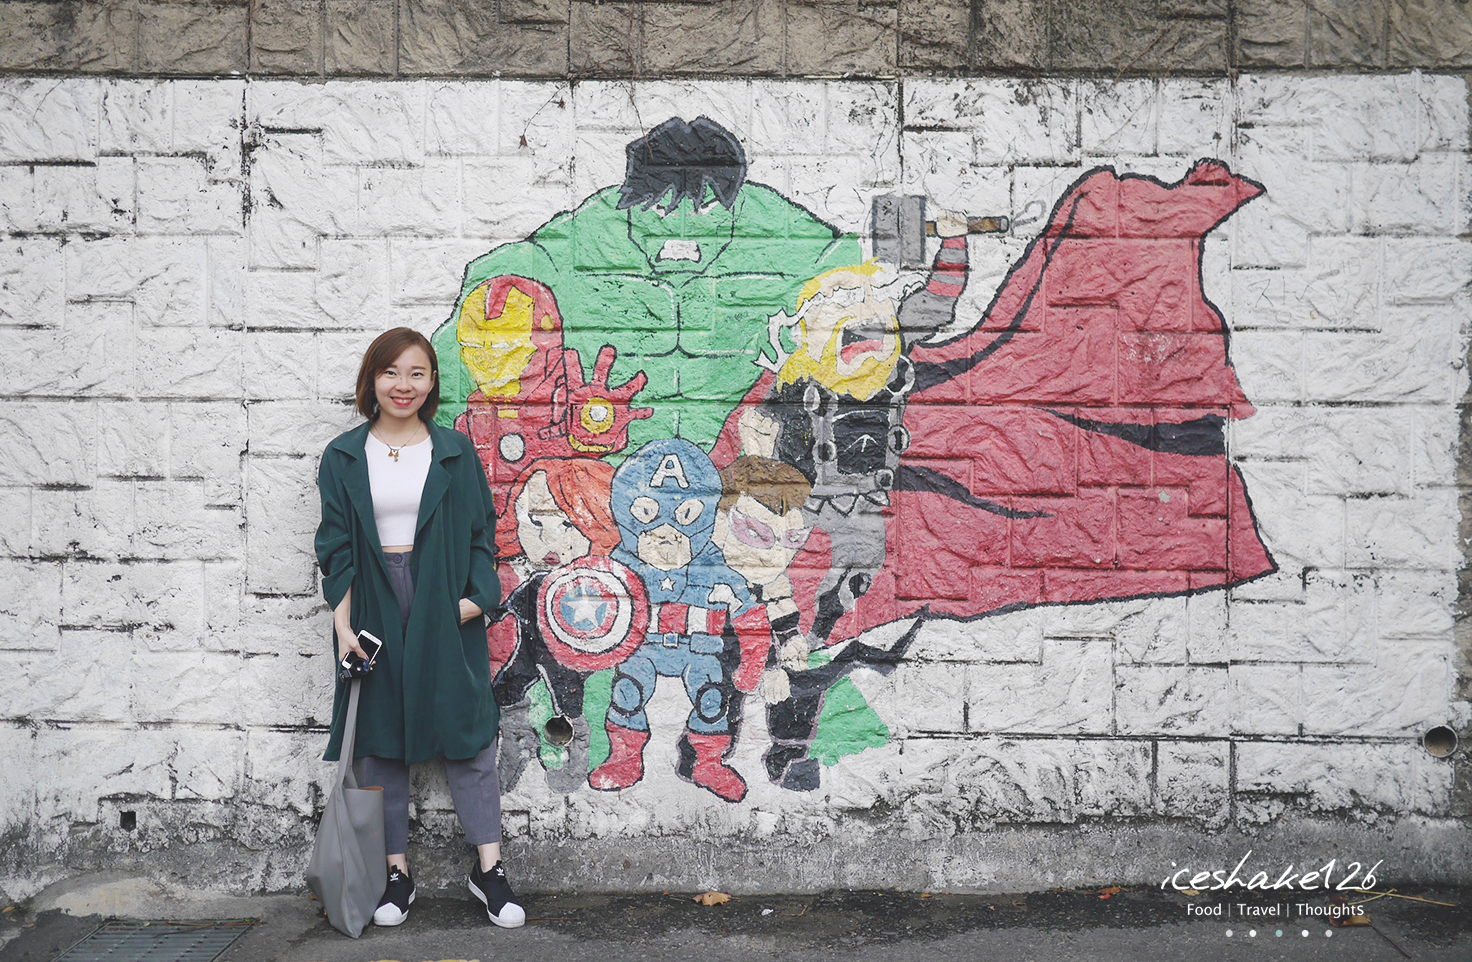 Seoul 2016 ihwa mural village the smell after rain for Mural village seoul